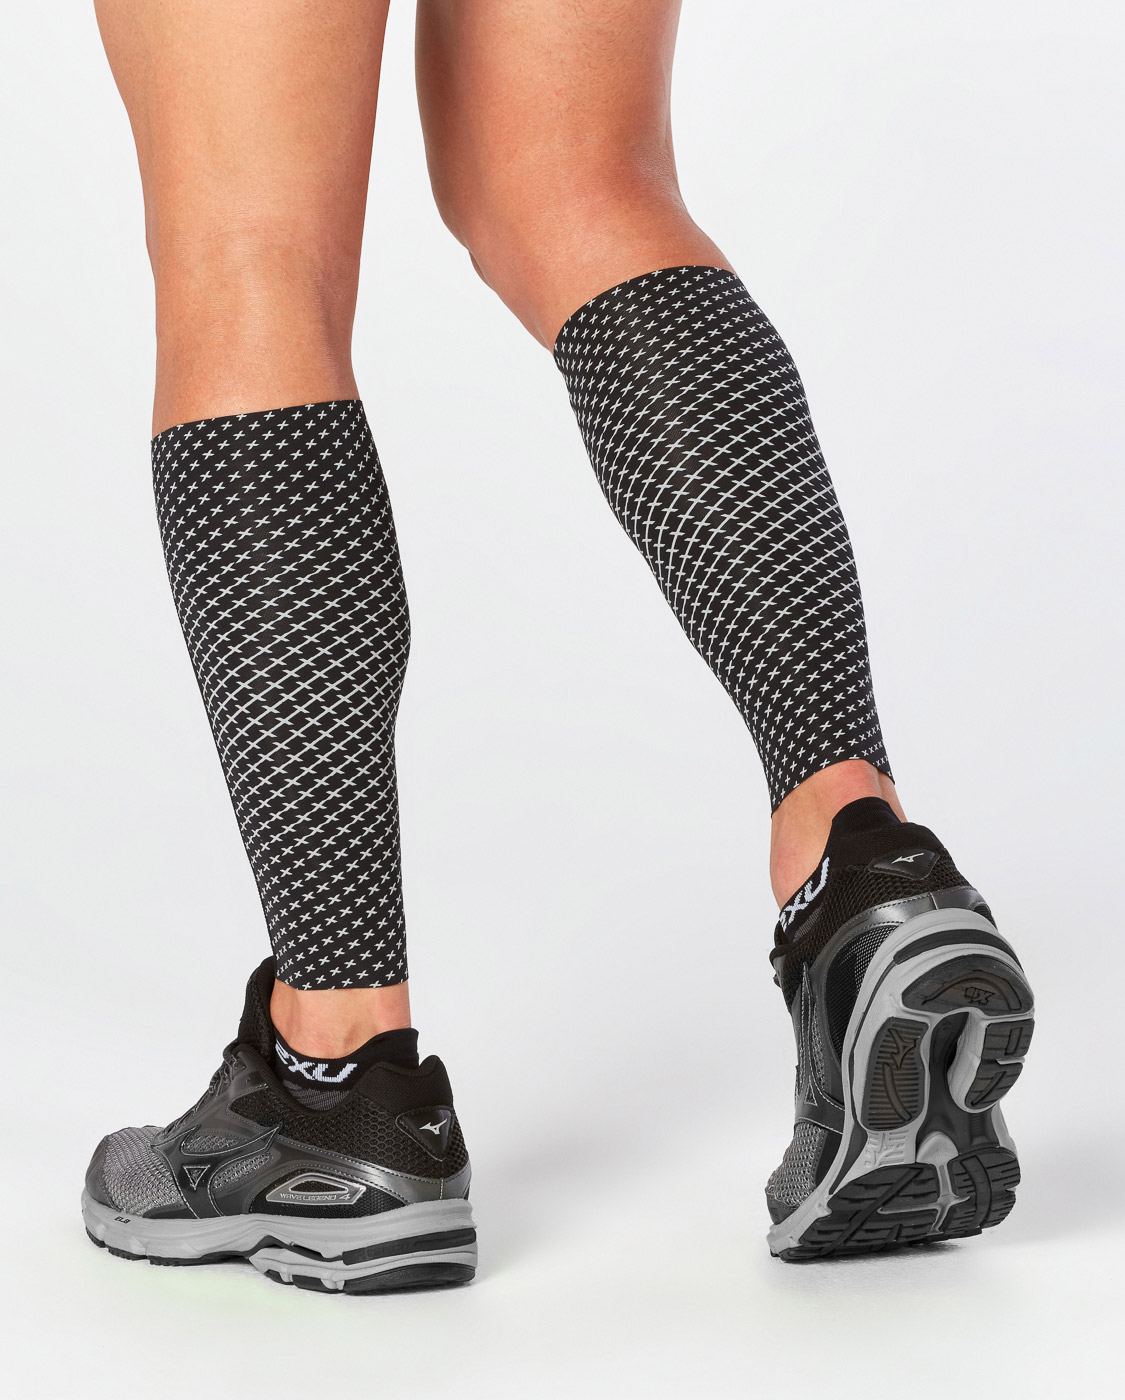 GAMBALI 2XU REFLECT COMPRESSION CALF GUARDS UA4668B BACK.jpg